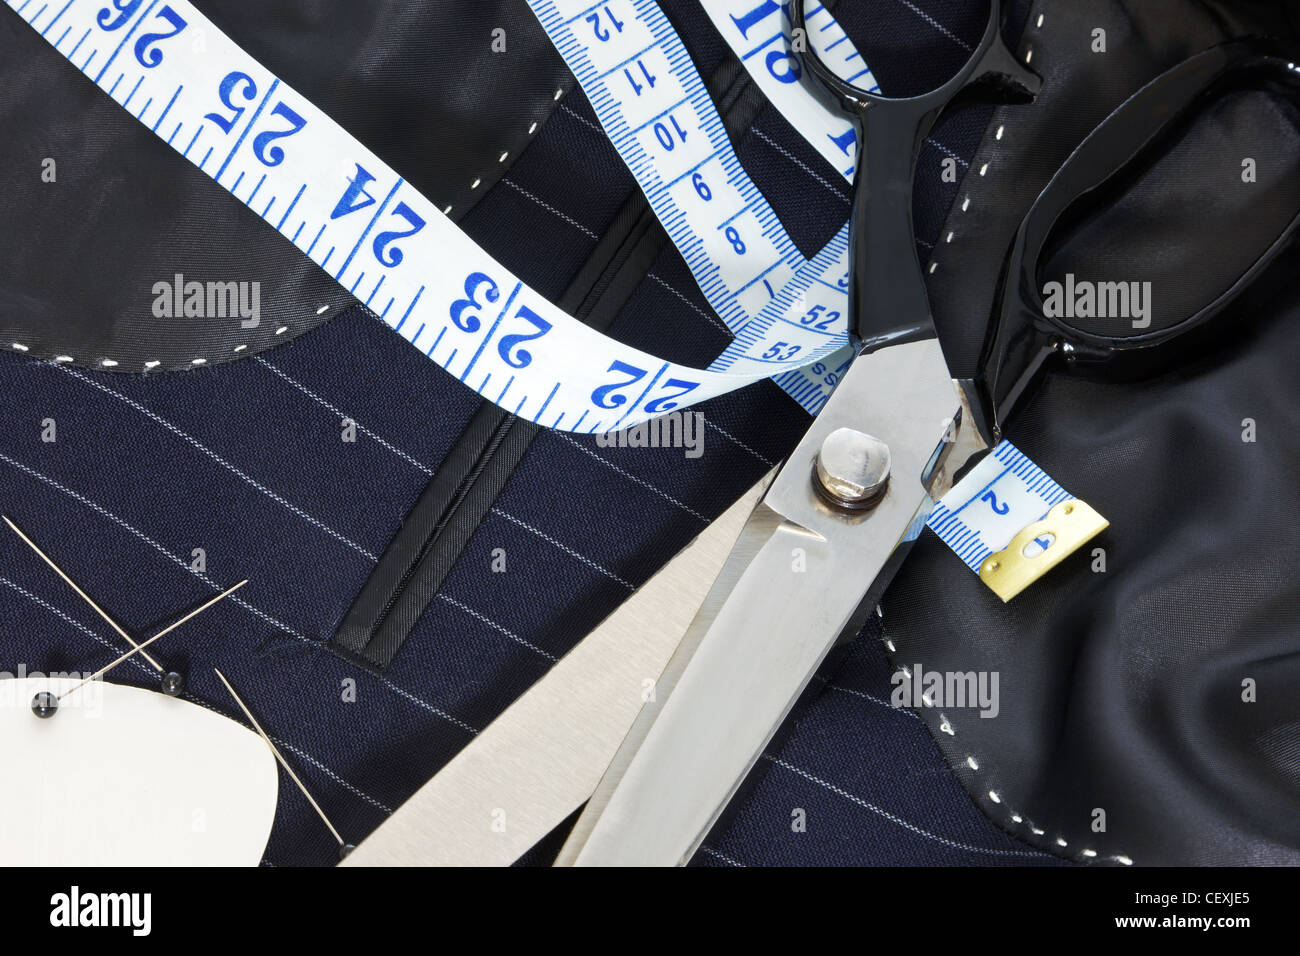 Still life photo of the inside of a bespoke suit jacket with hand stitching and scissors, tape measure, chalk and - Stock Image